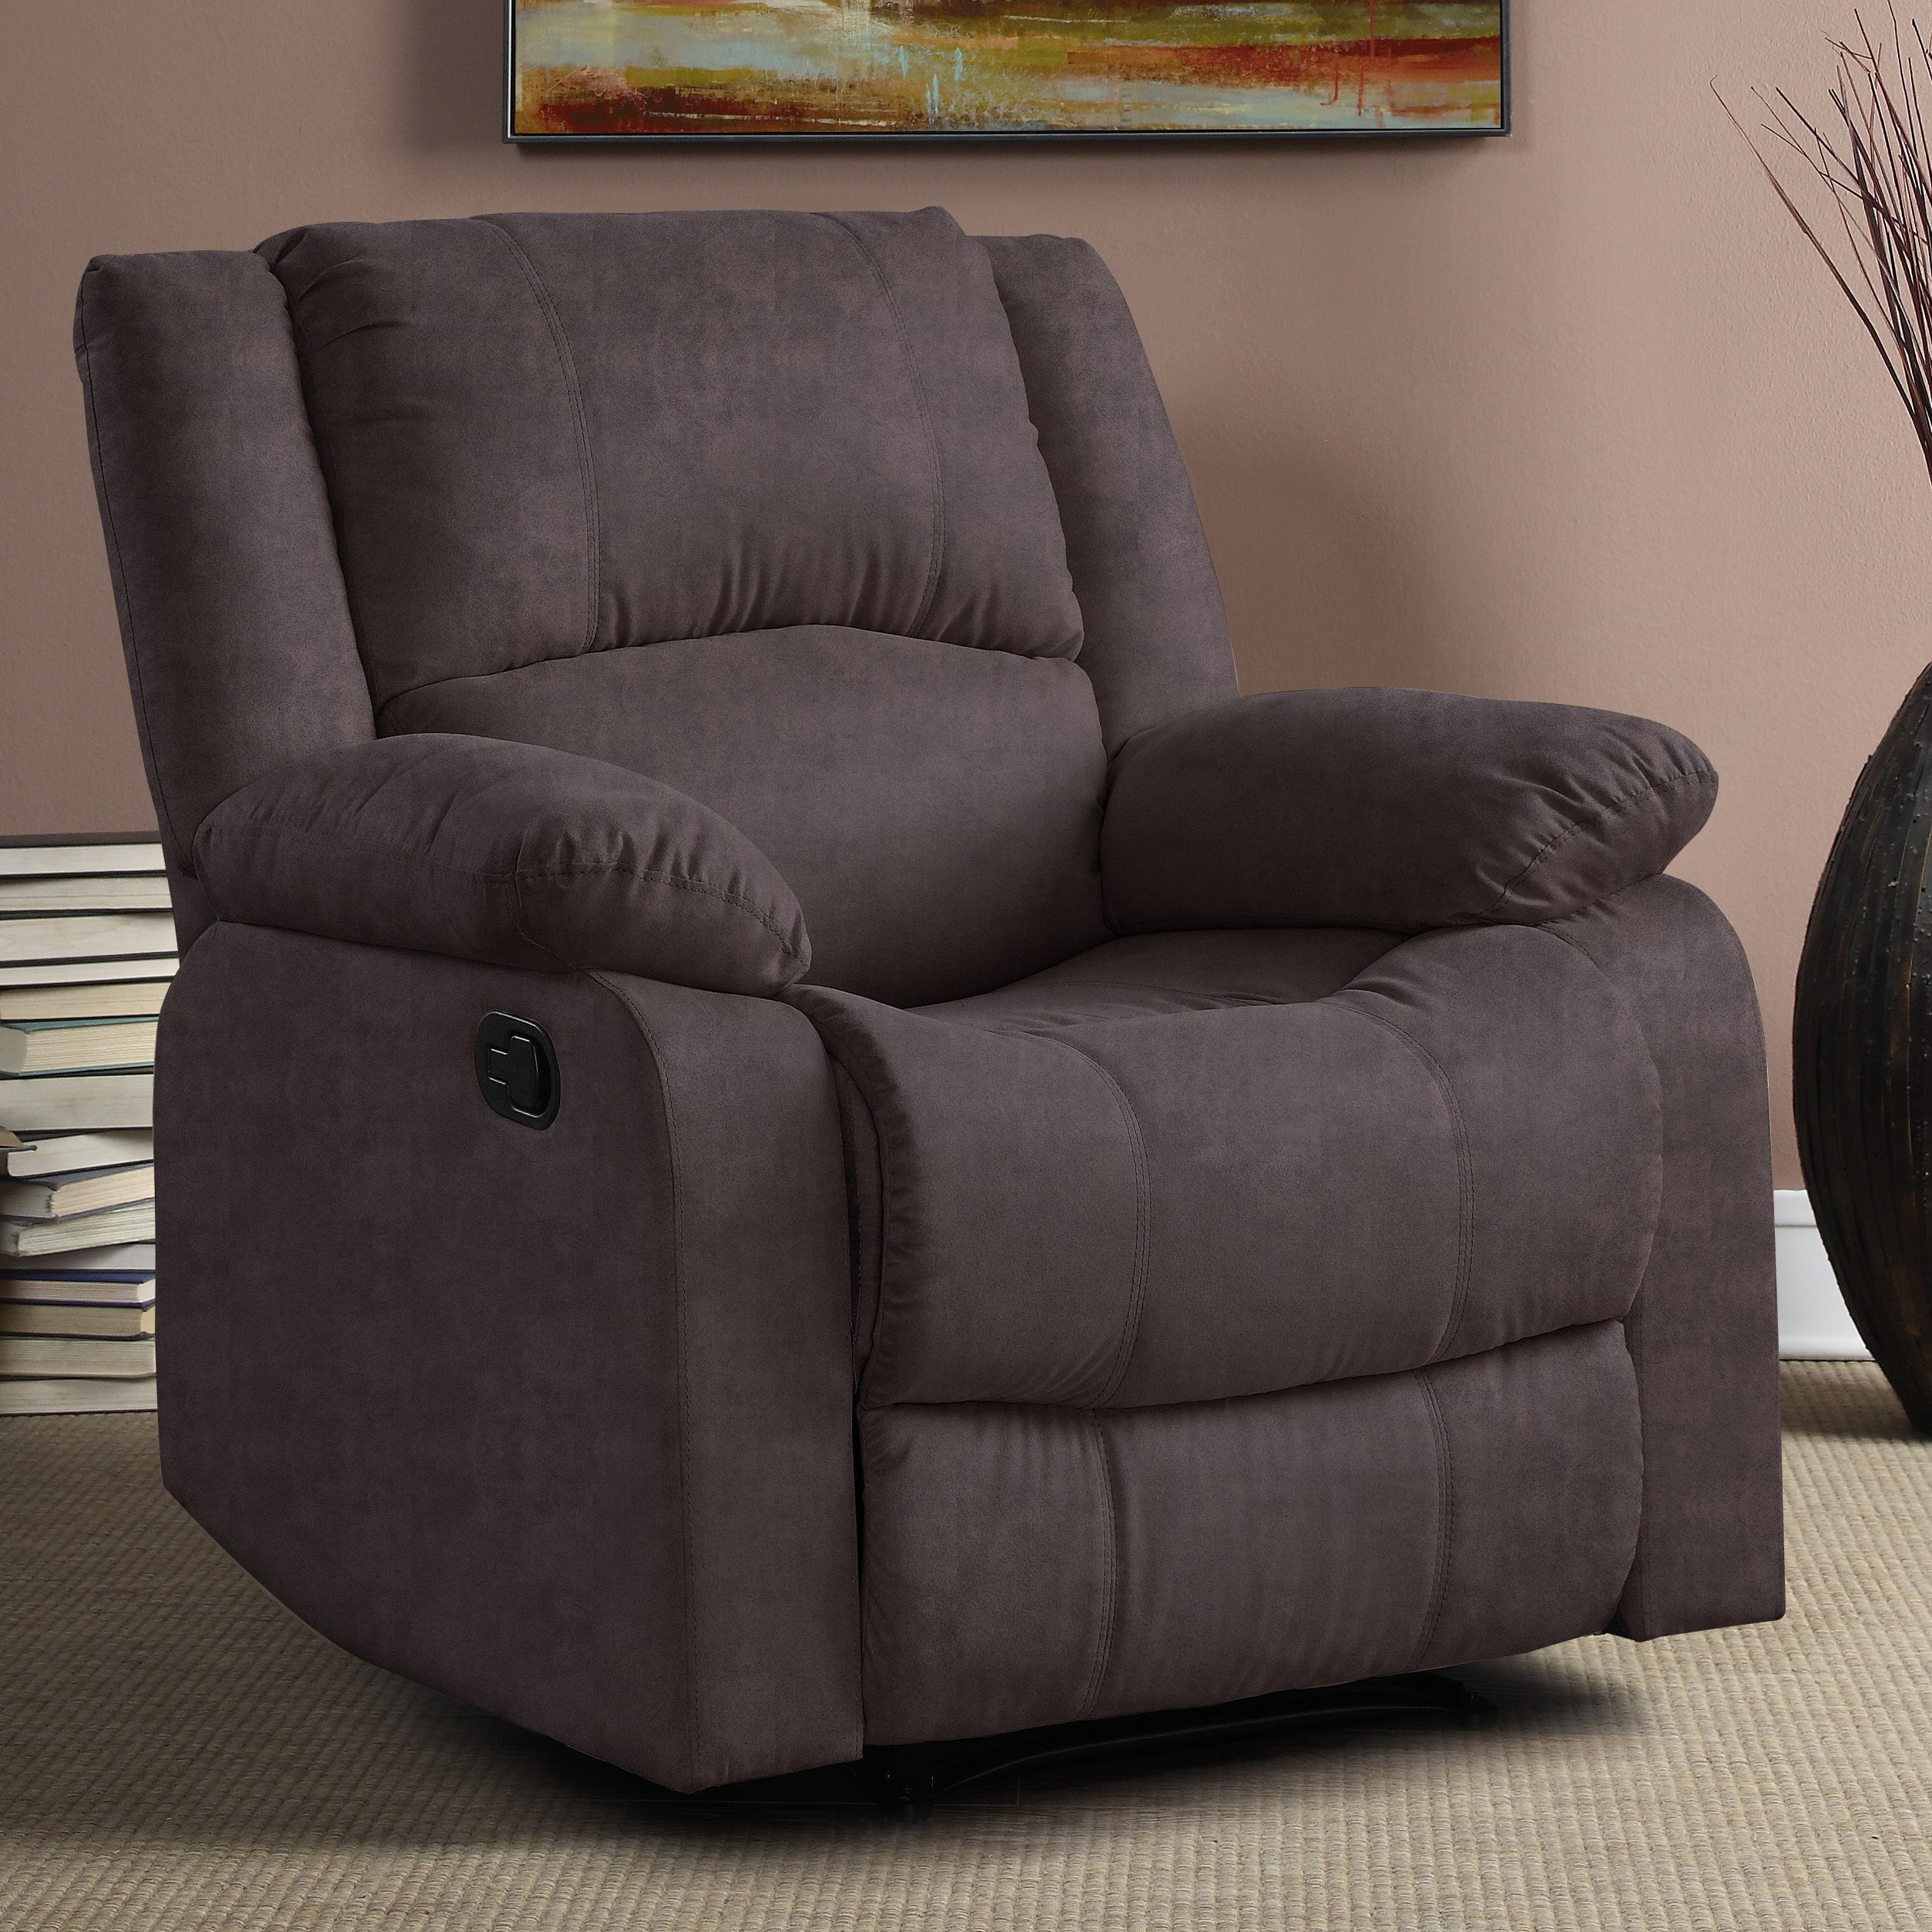 Warren Recliner Single Chair In Chocolate Microfiber